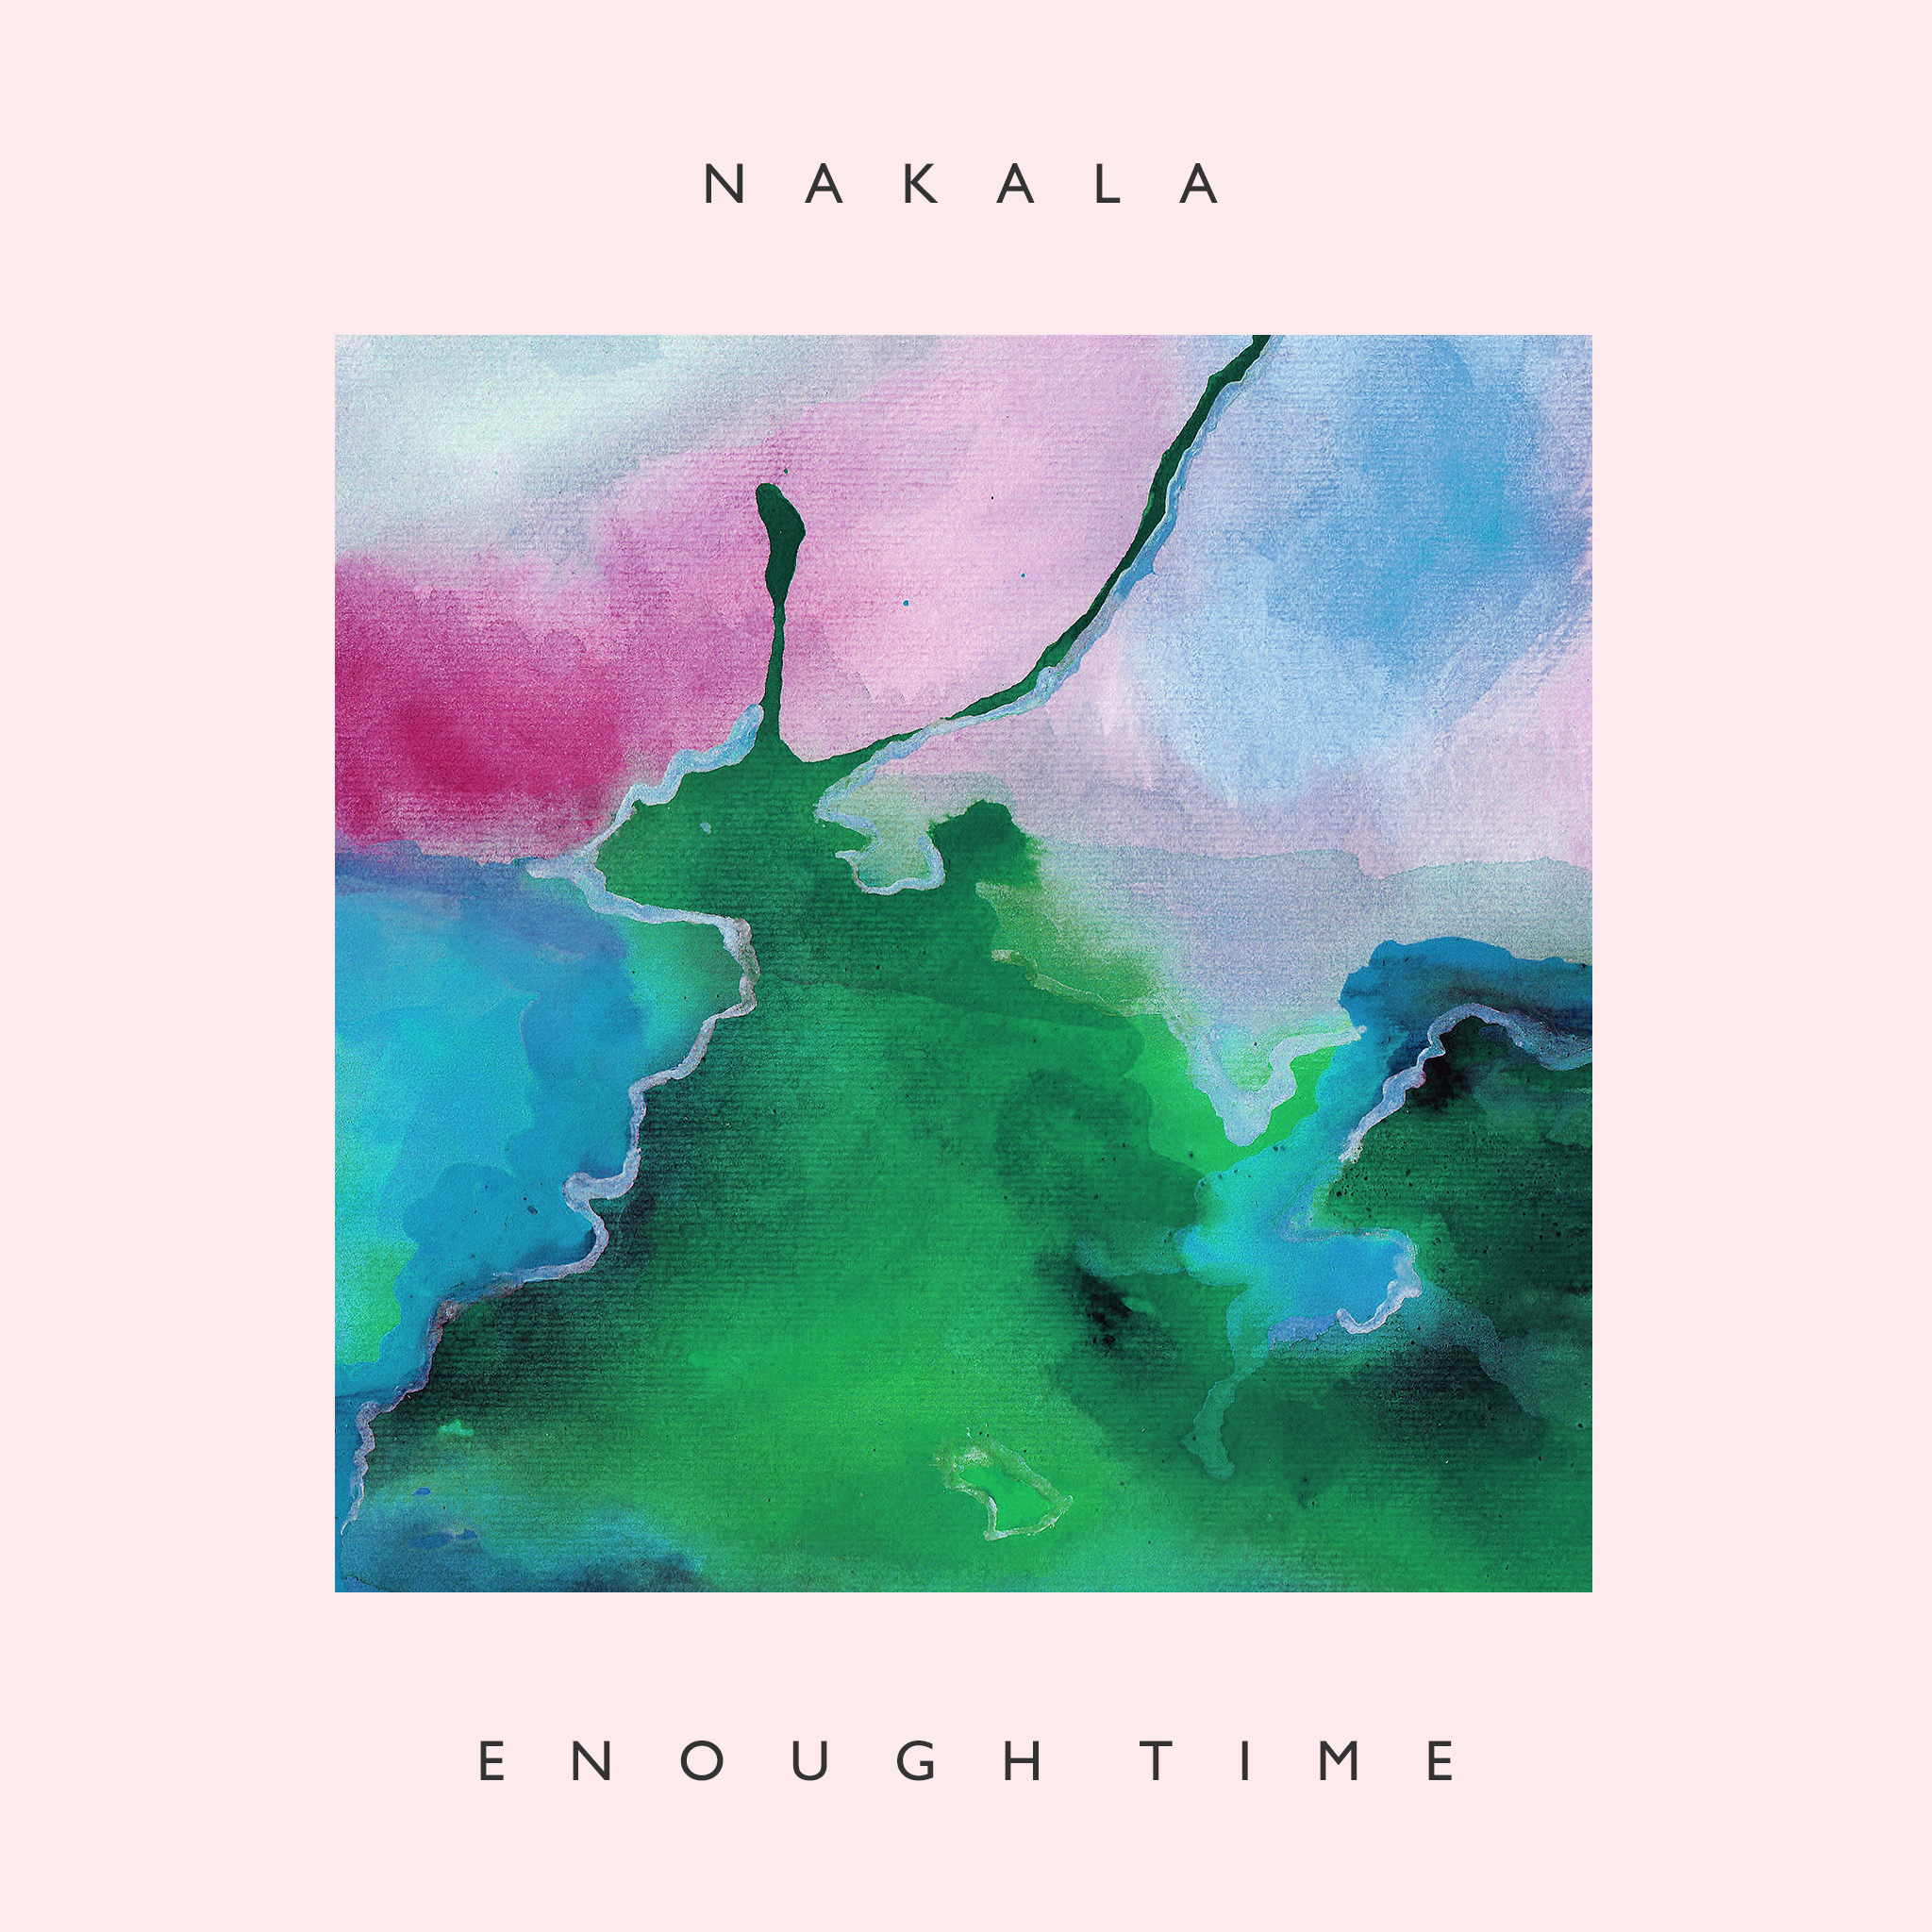 nakala enoughtime live artwork sample.png